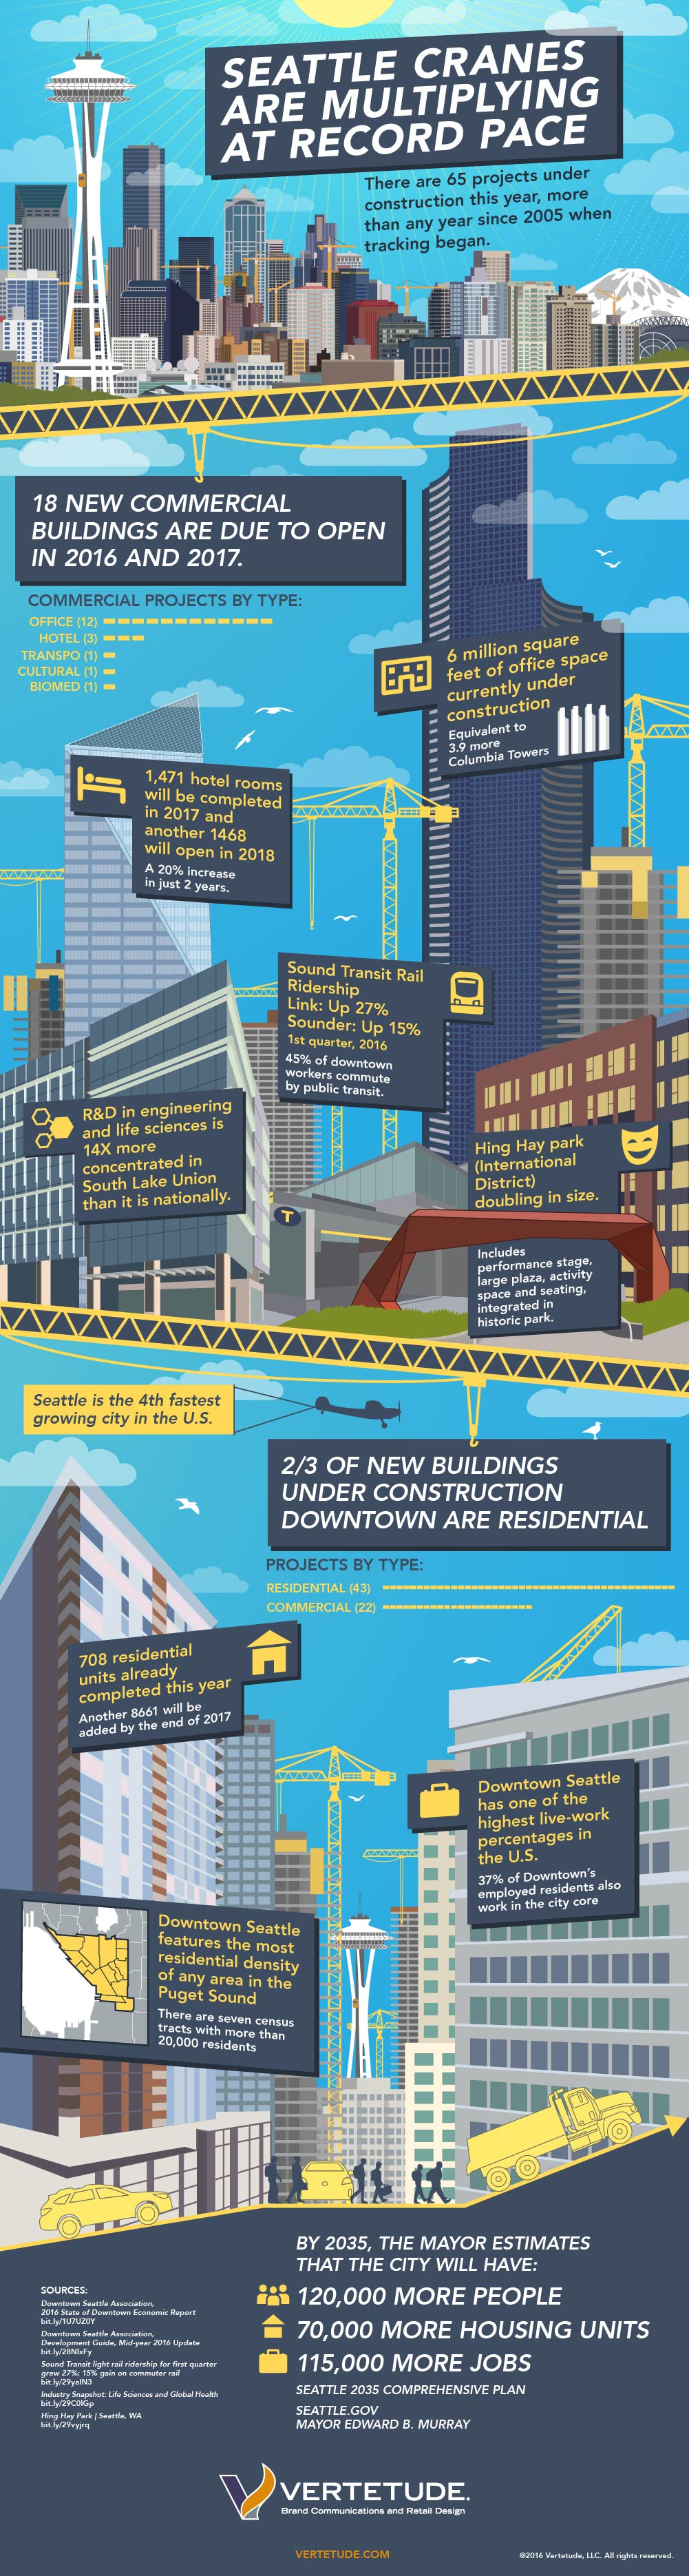 Infographic poster illustrating the booming growth of downtown Seattle